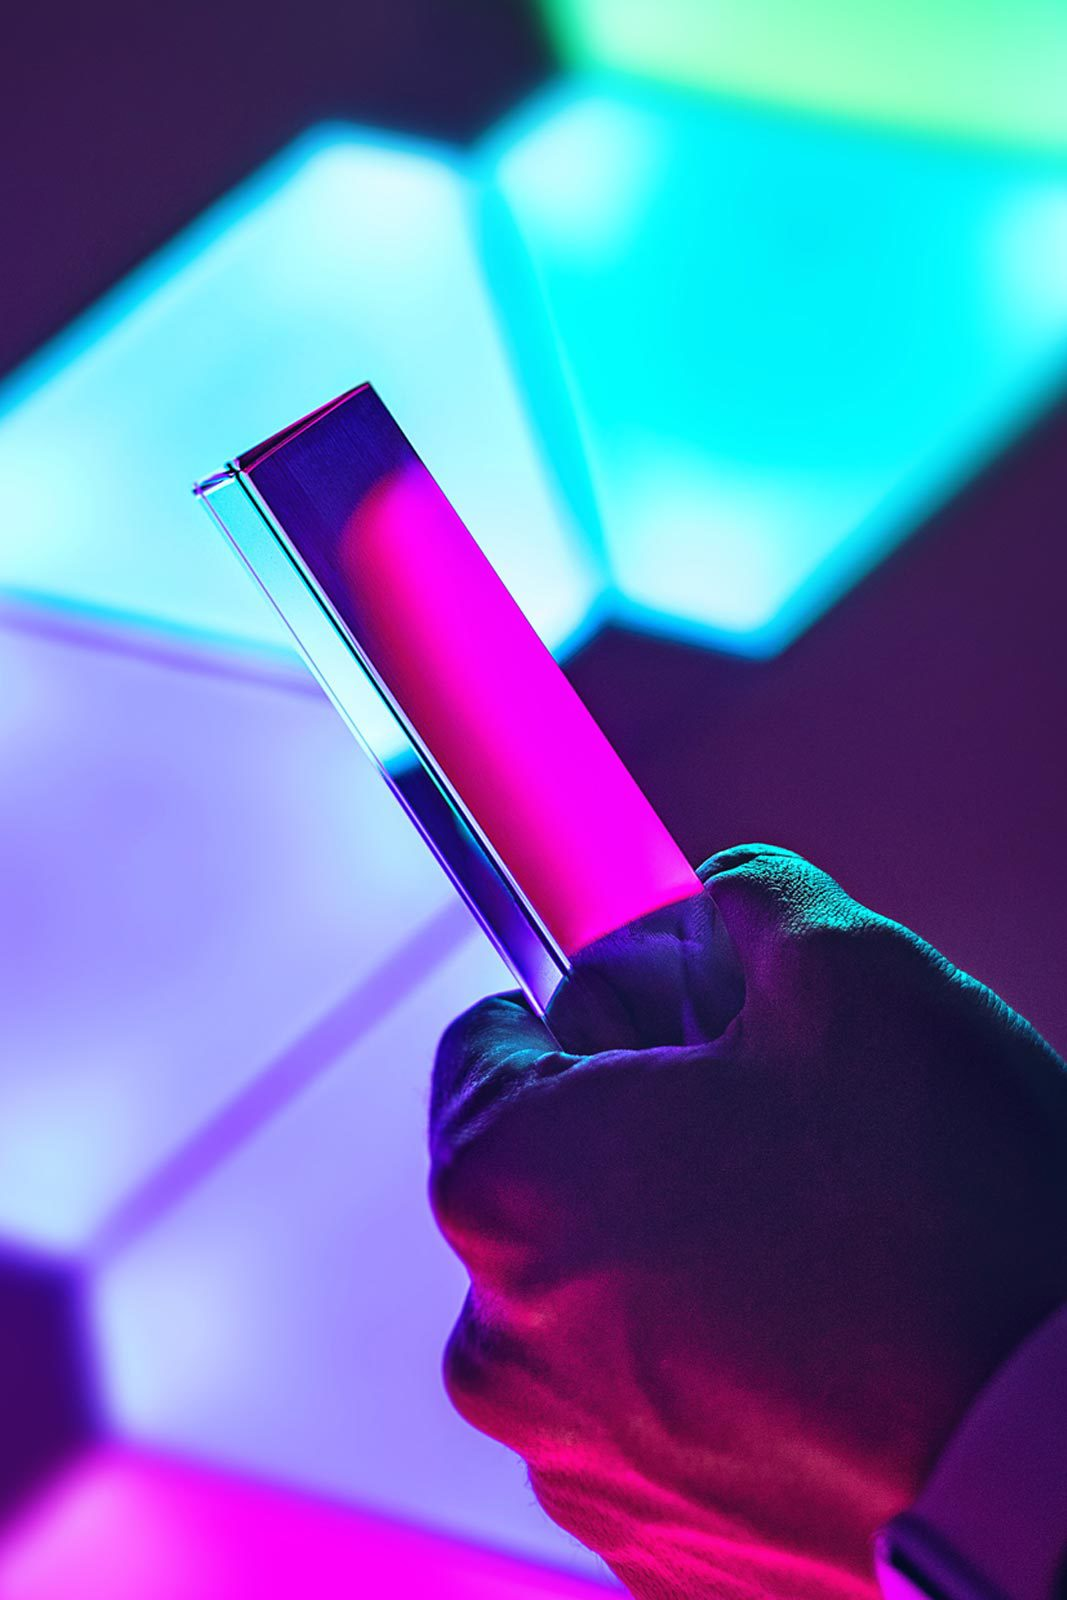 Hand holding smartphone in front of blue, purple, and pink geometric lights.